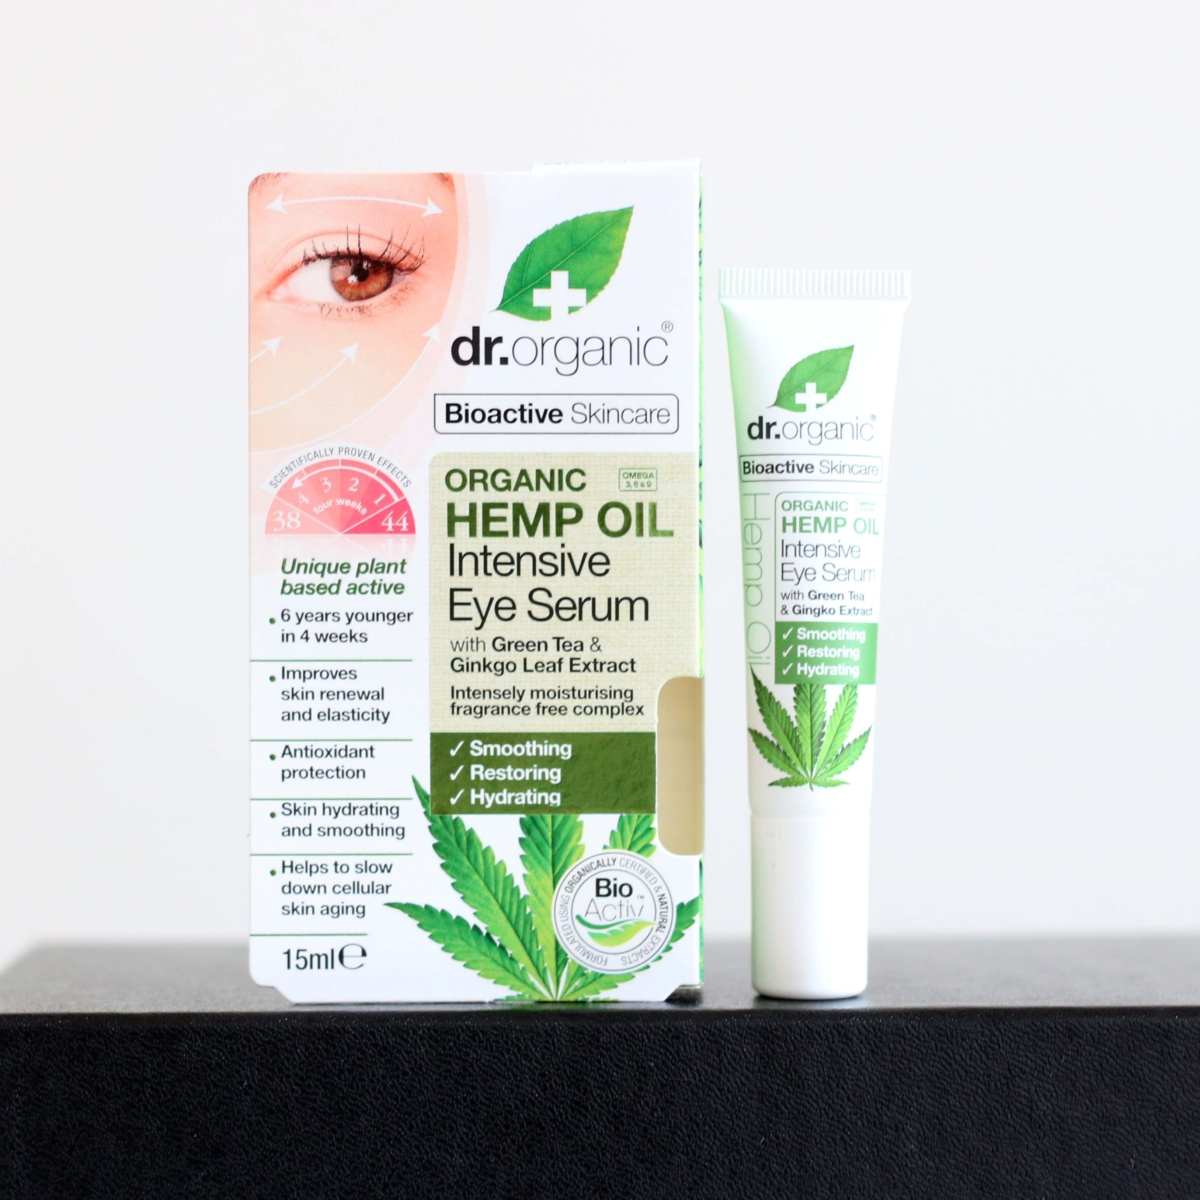 Latest in Beauty Build Your Own Box Review - Dr Organic Hemp Oil Intensive Eye Serum